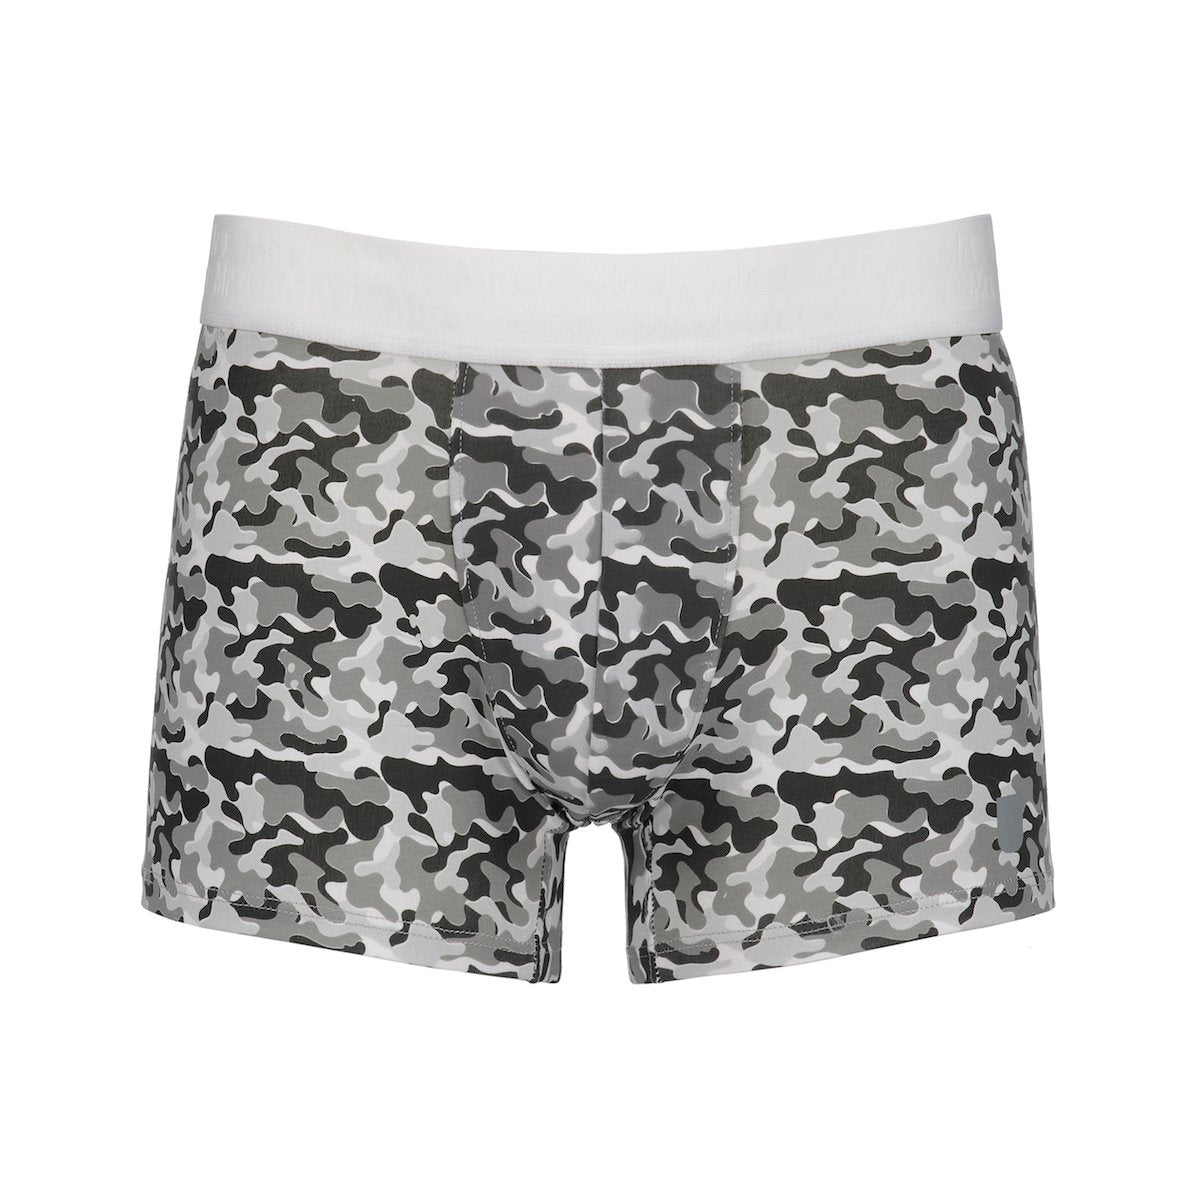 MR.U ARMY BOXER BRIEF GRIS - MRU.MX